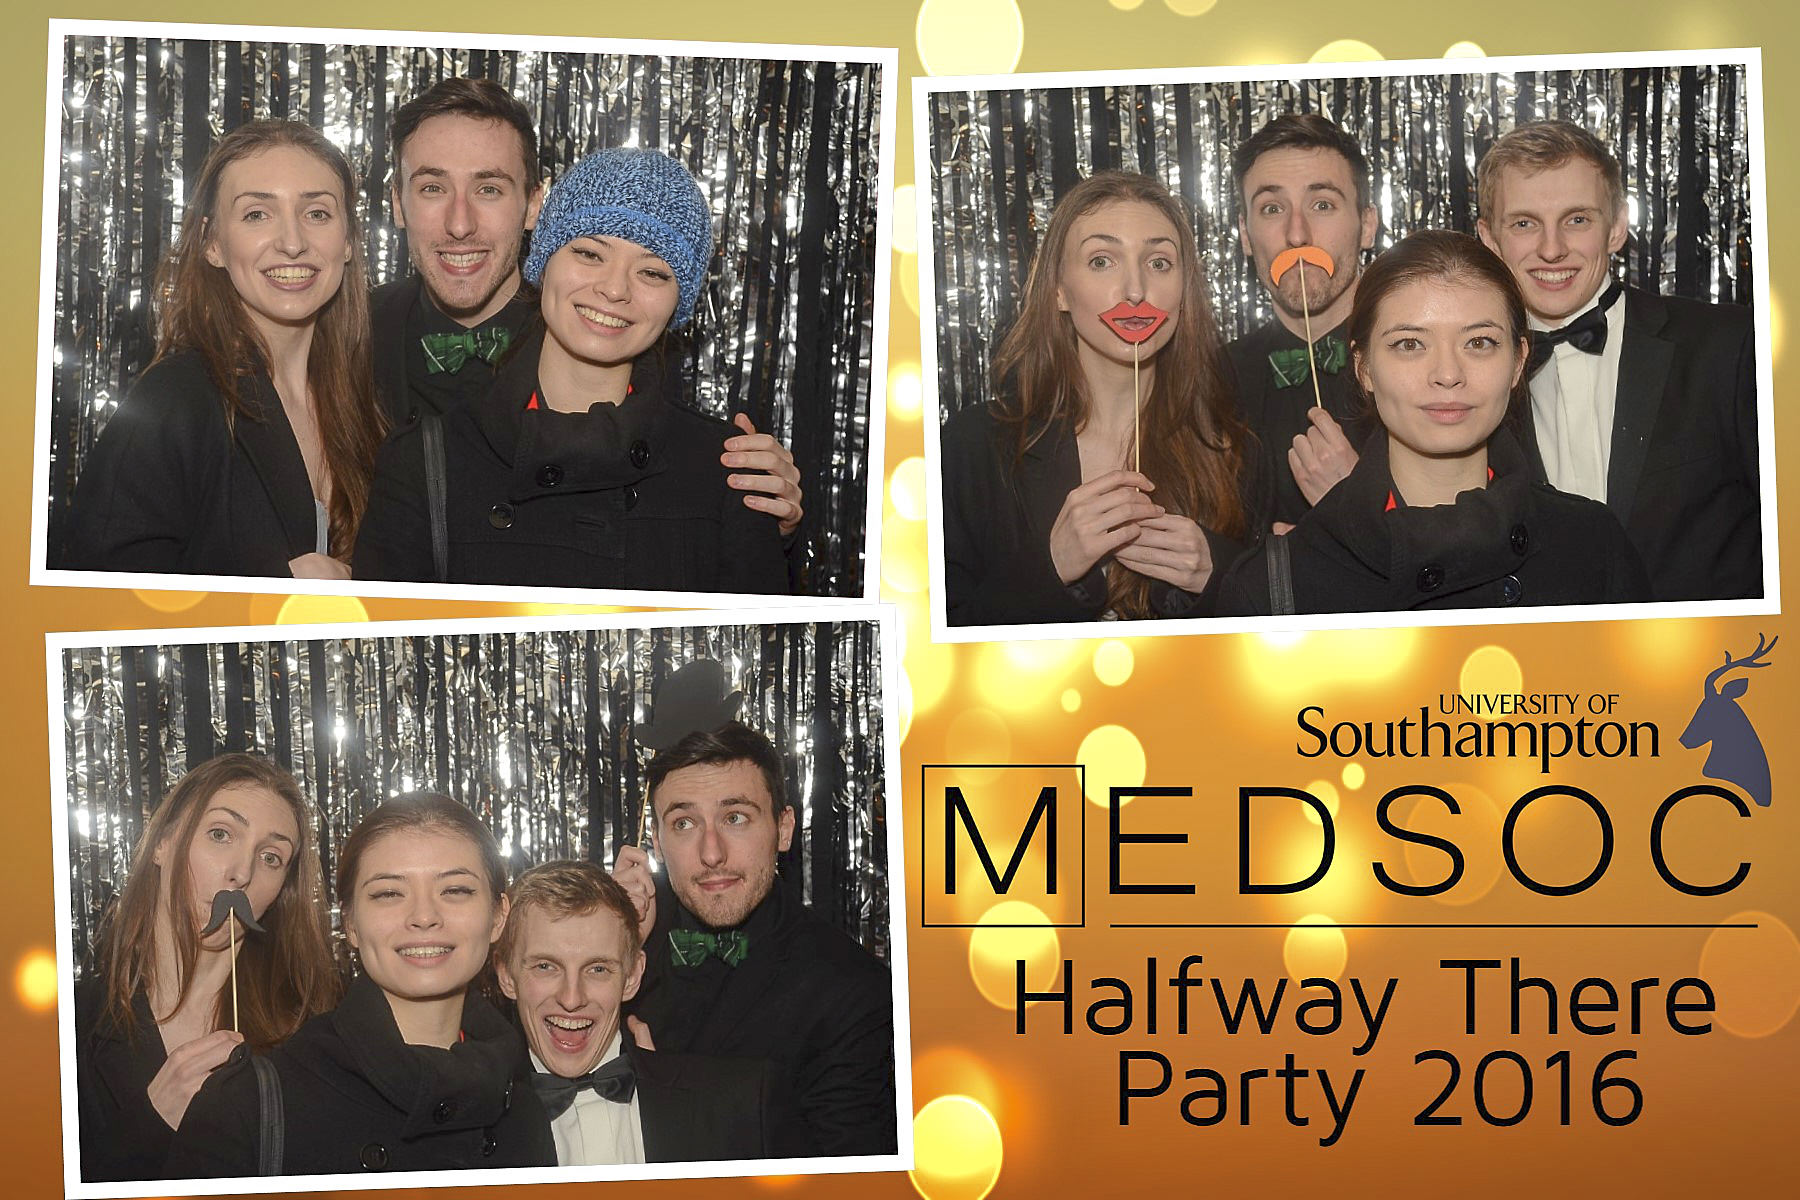 MedSoc Halfway There Party 2016 DS230909.jpg